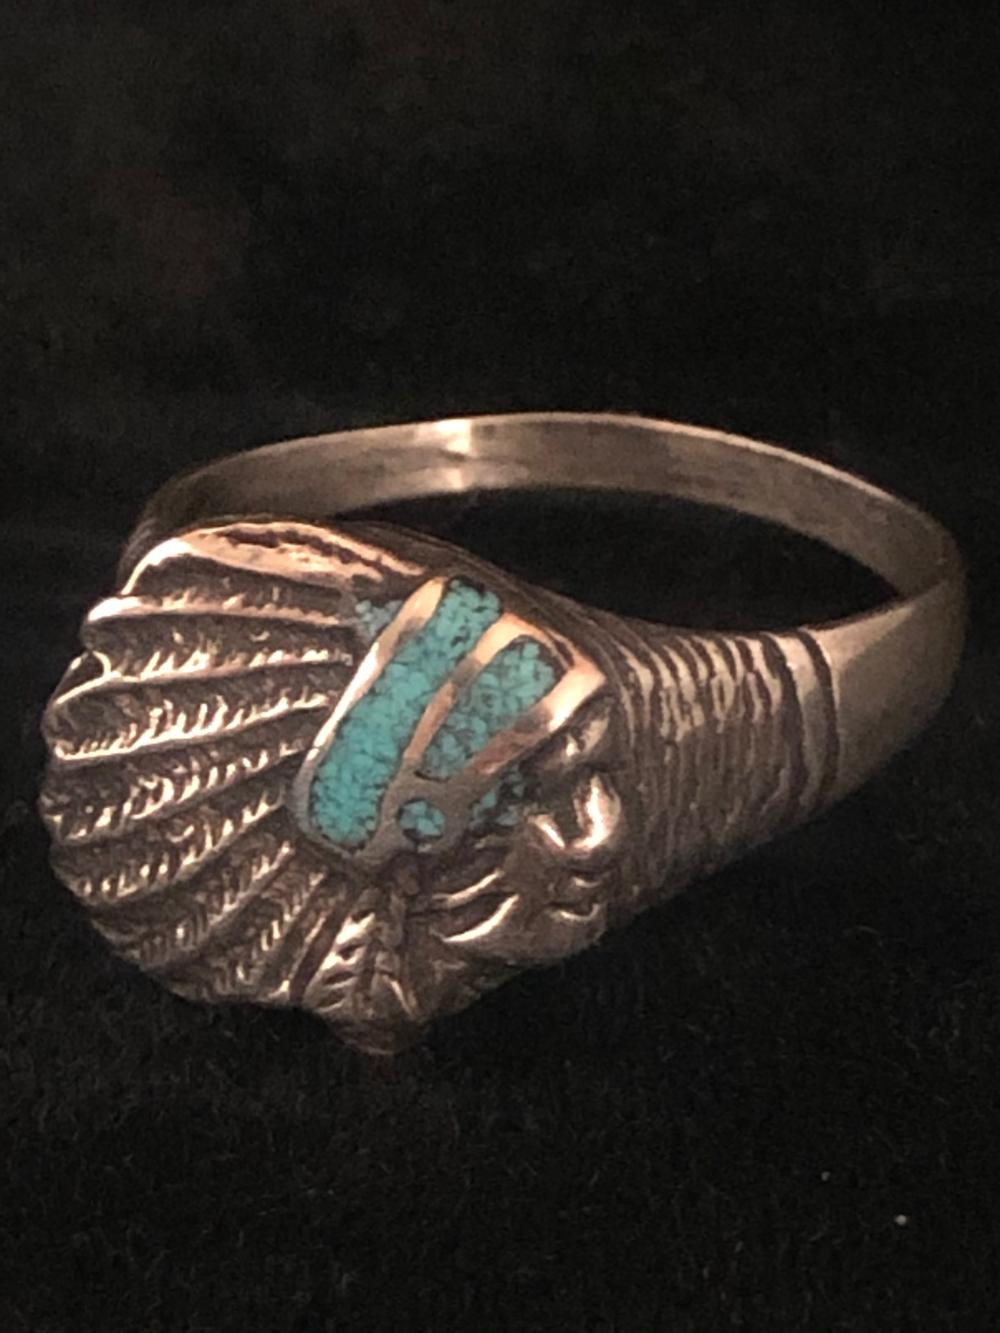 Native American face with turquoise chip inlay sterling silver ring